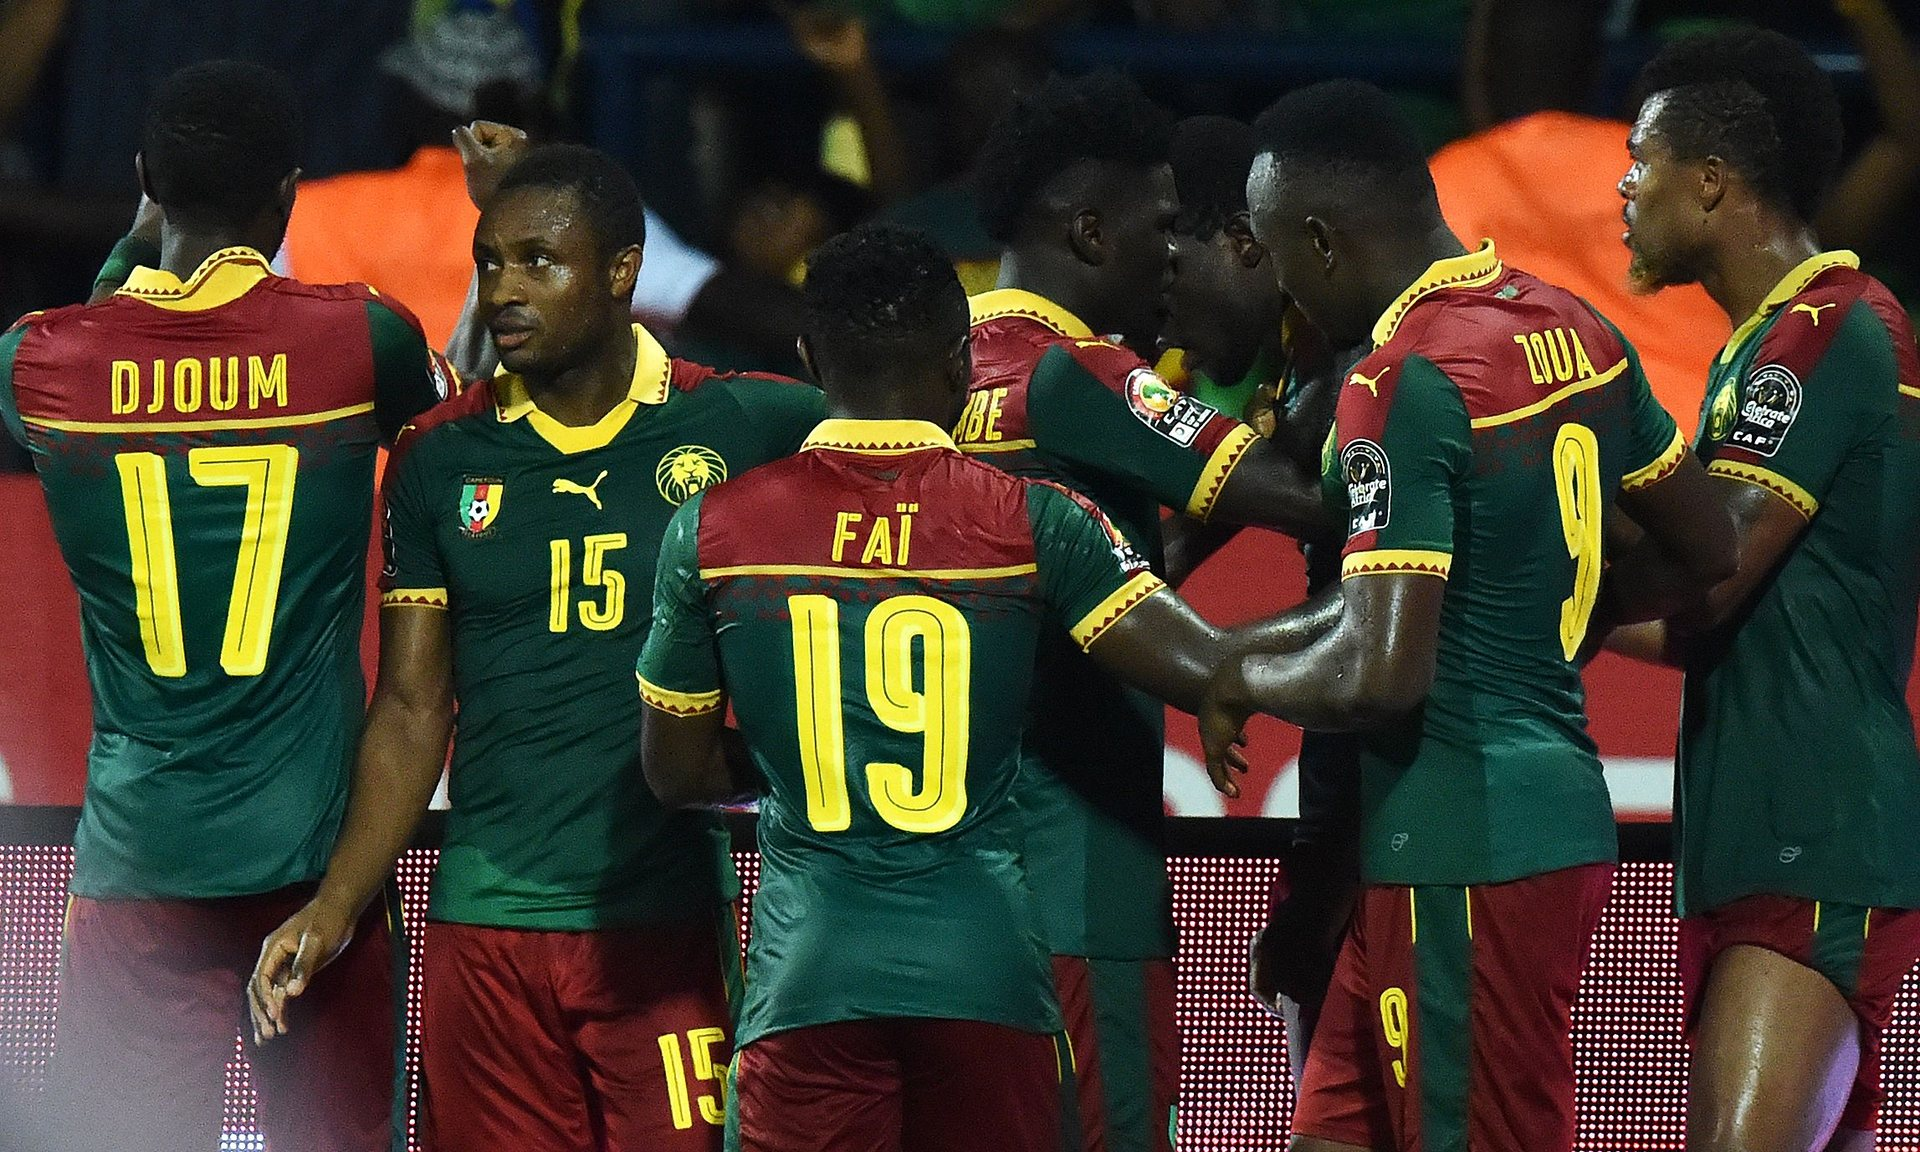 Cameroon beat Ghana 2-0 to book Afcon 2017 final ticket